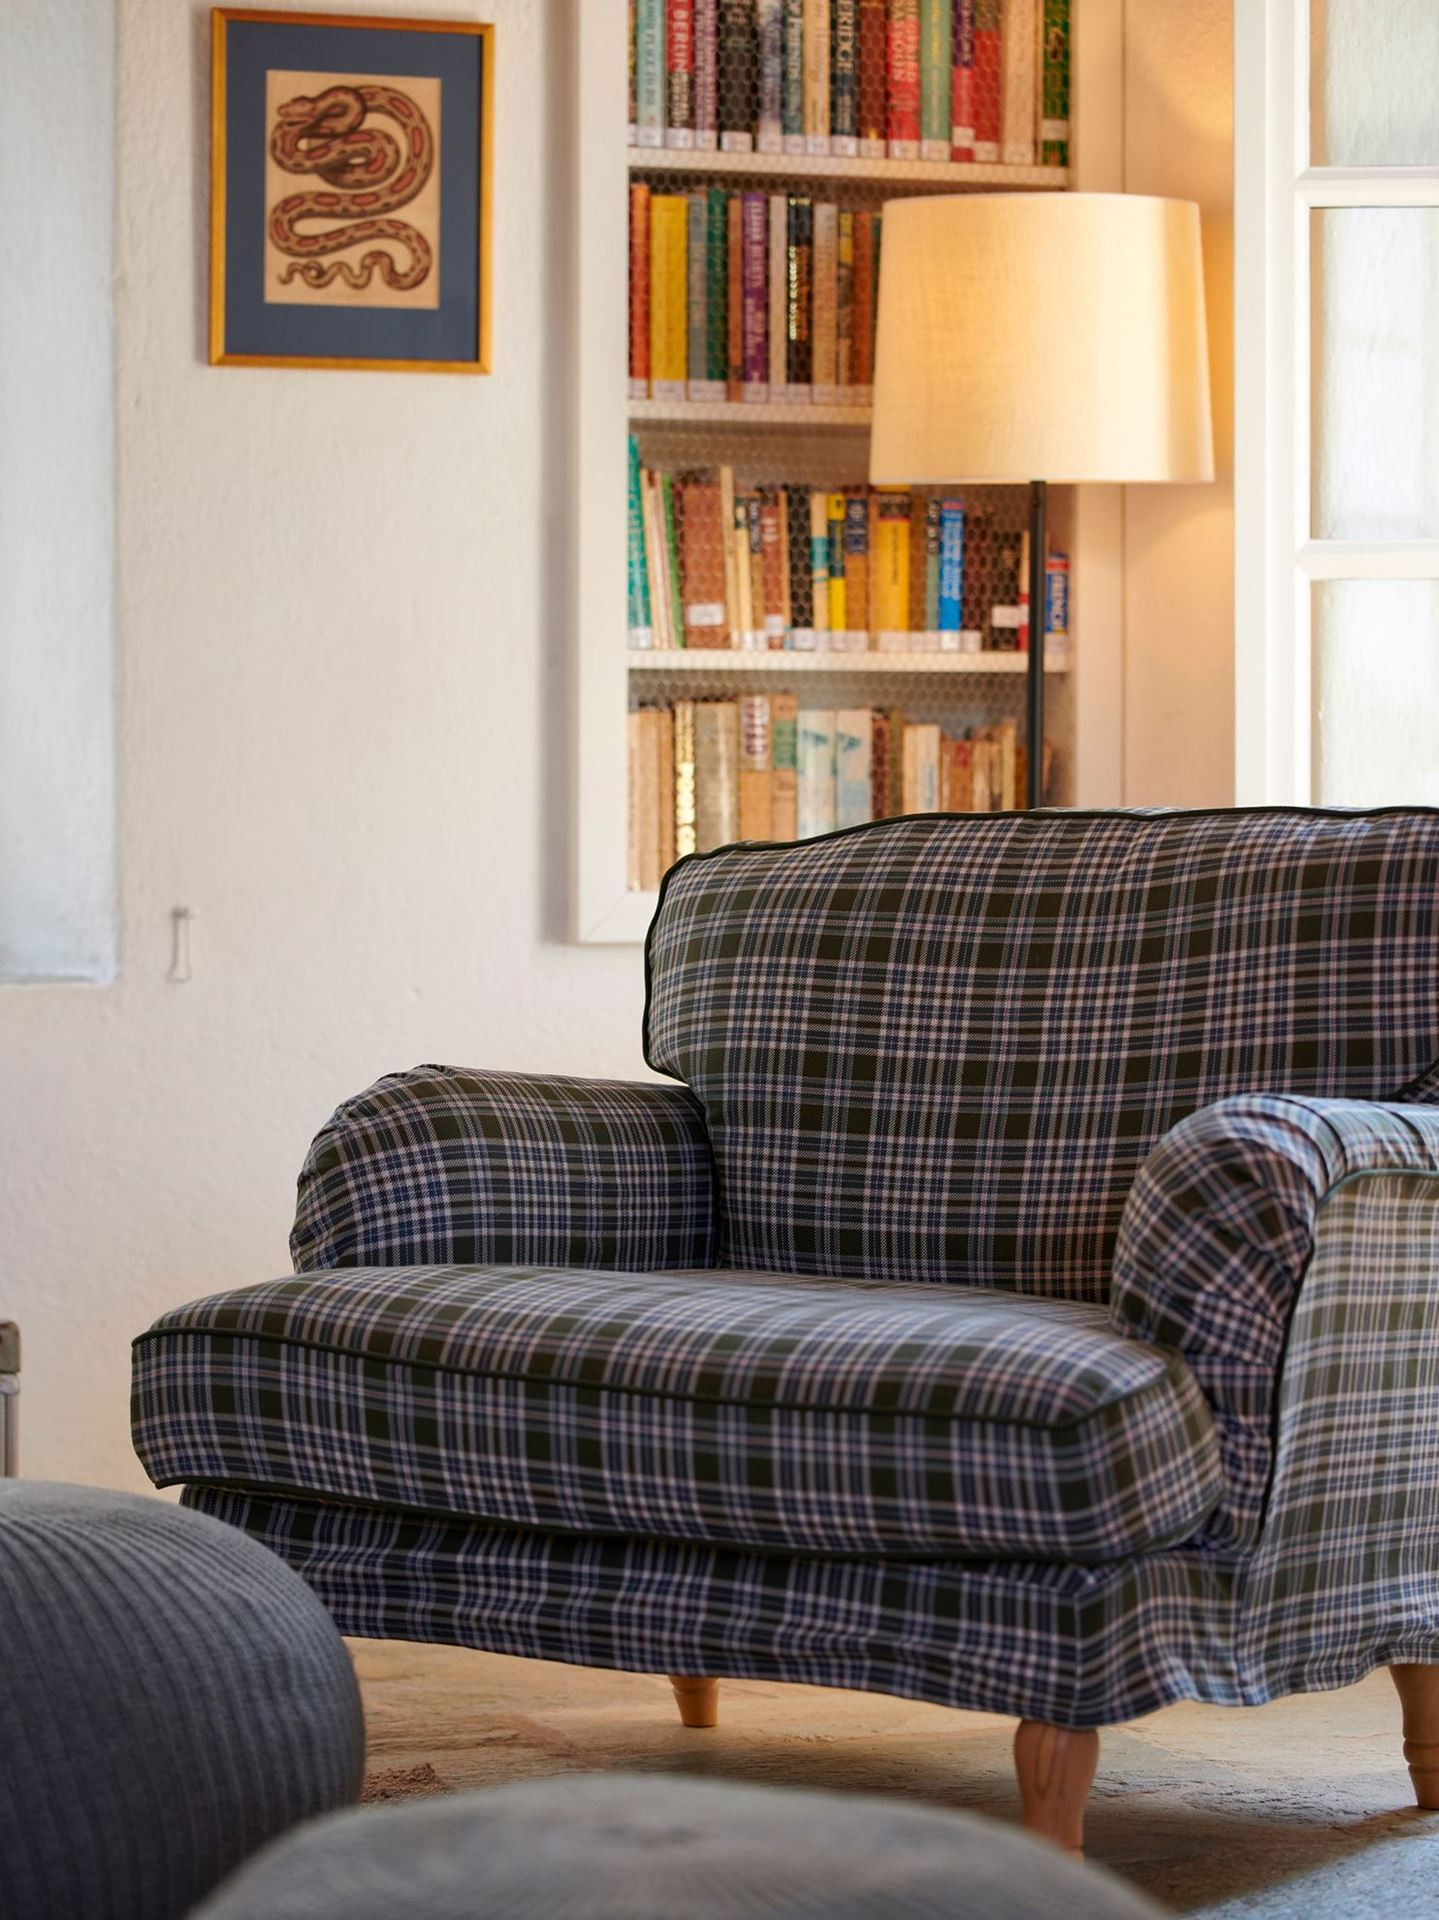 The Patrick & Joan Leigh Fermor House - Exclusive Use